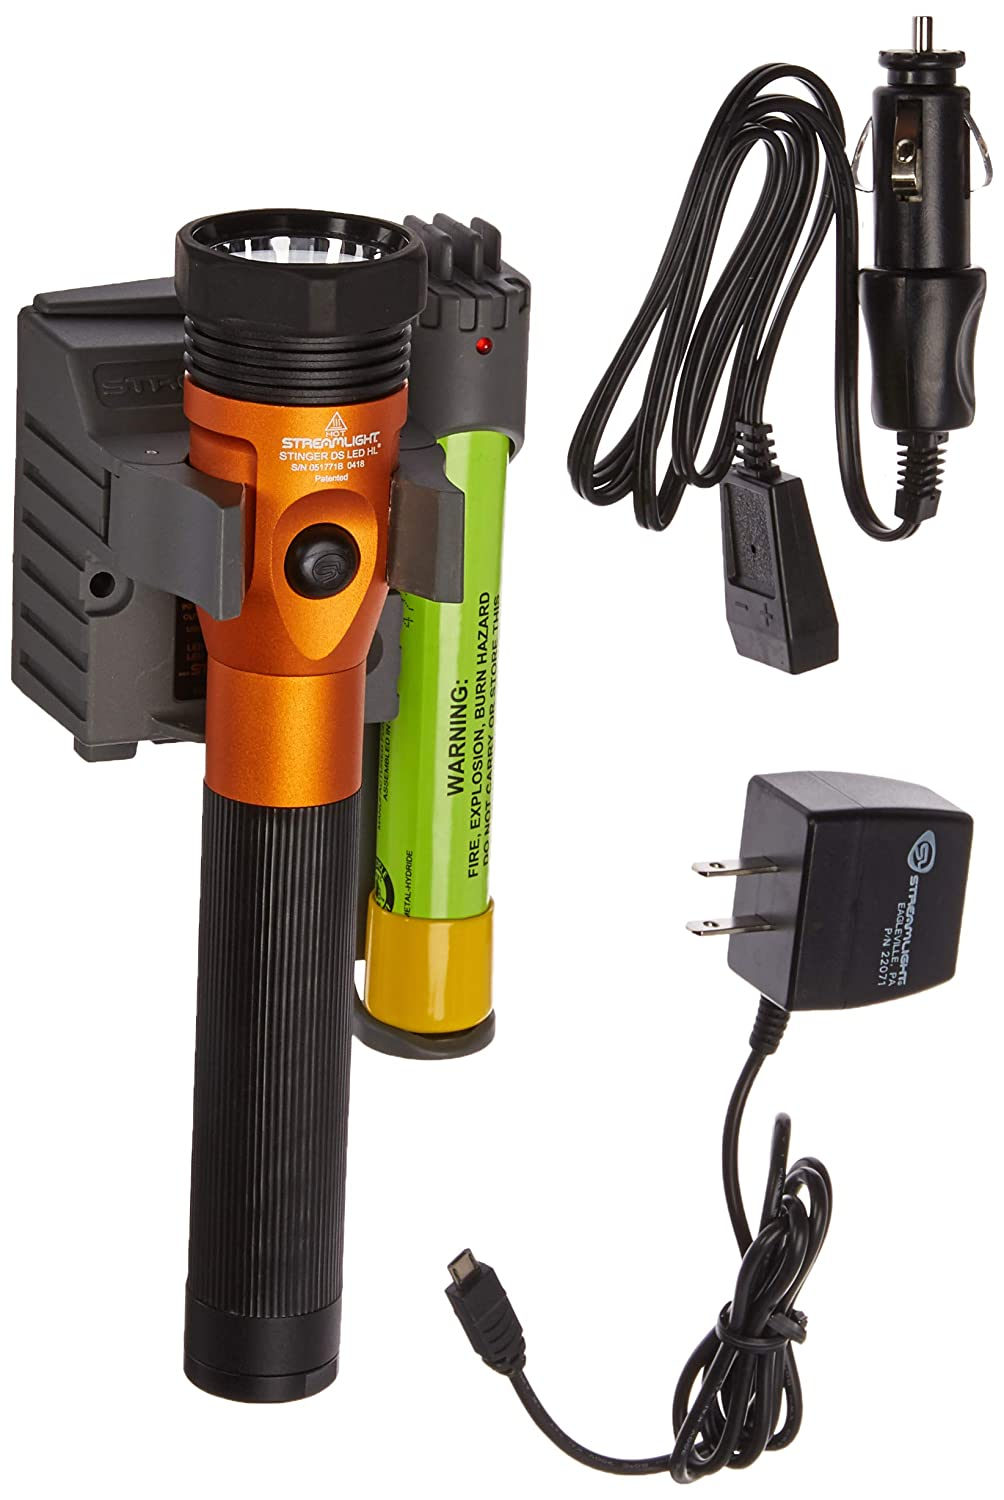 Streamlight 75490 Orange Ds Stinger Led Hl Ac-Dc With Piggyback Charger 640 Lum B00EA1XCR8